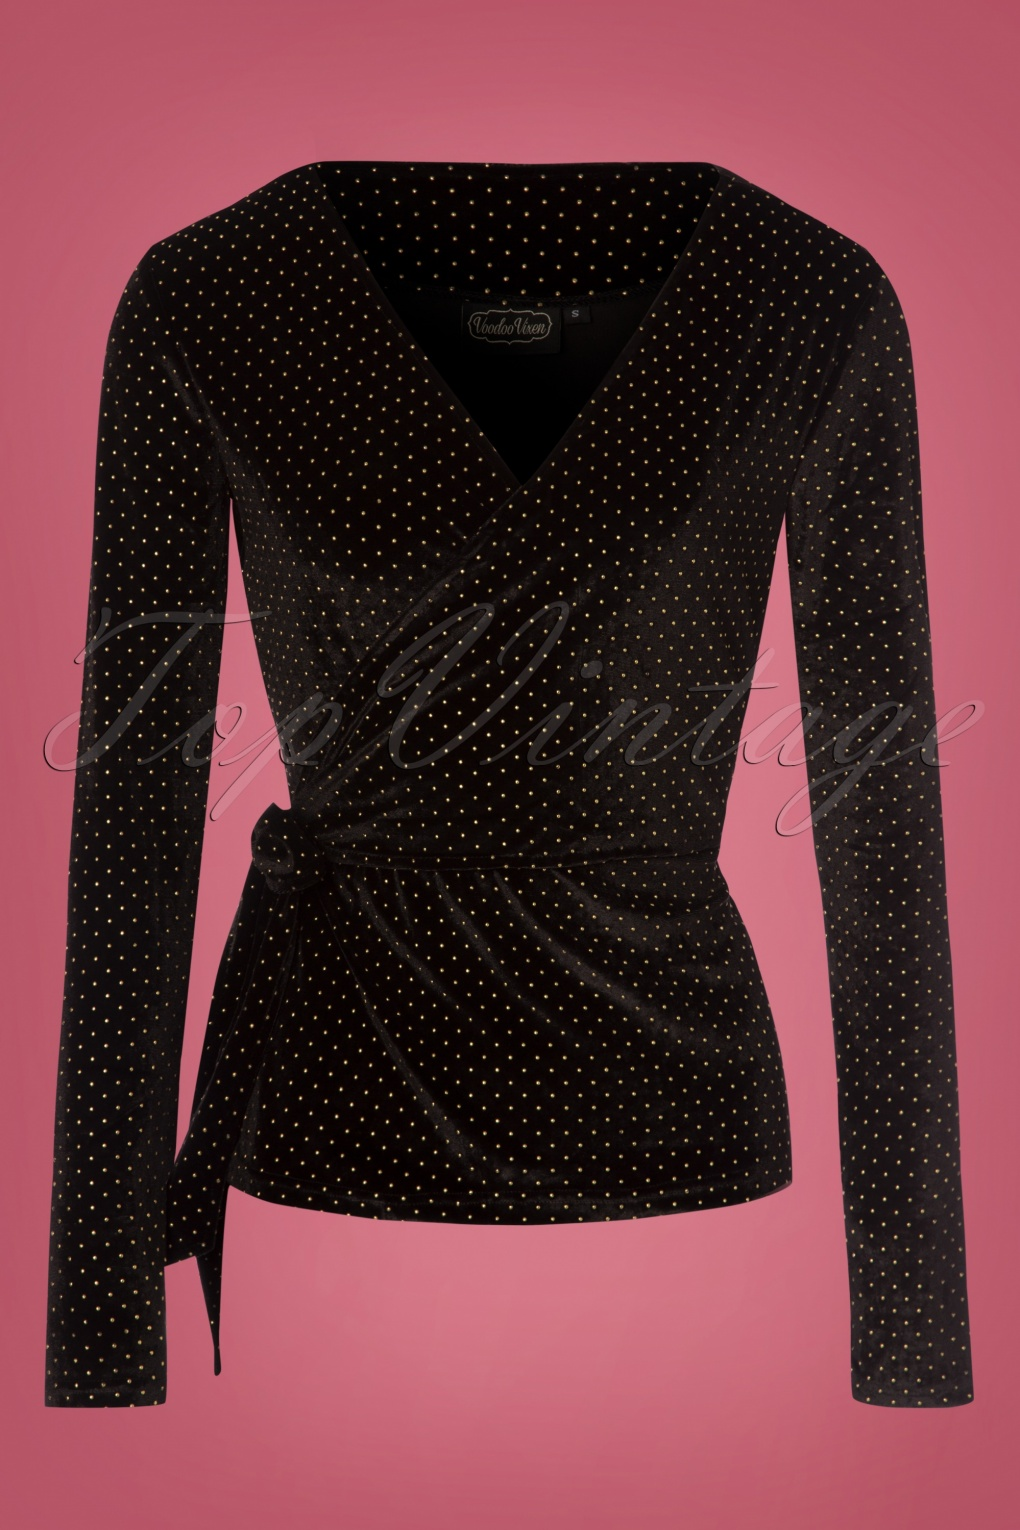 Vintage & Retro Shirts, Halter Tops, Blouses Maria Gold Speckled Top in Black £32.99 AT vintagedancer.com